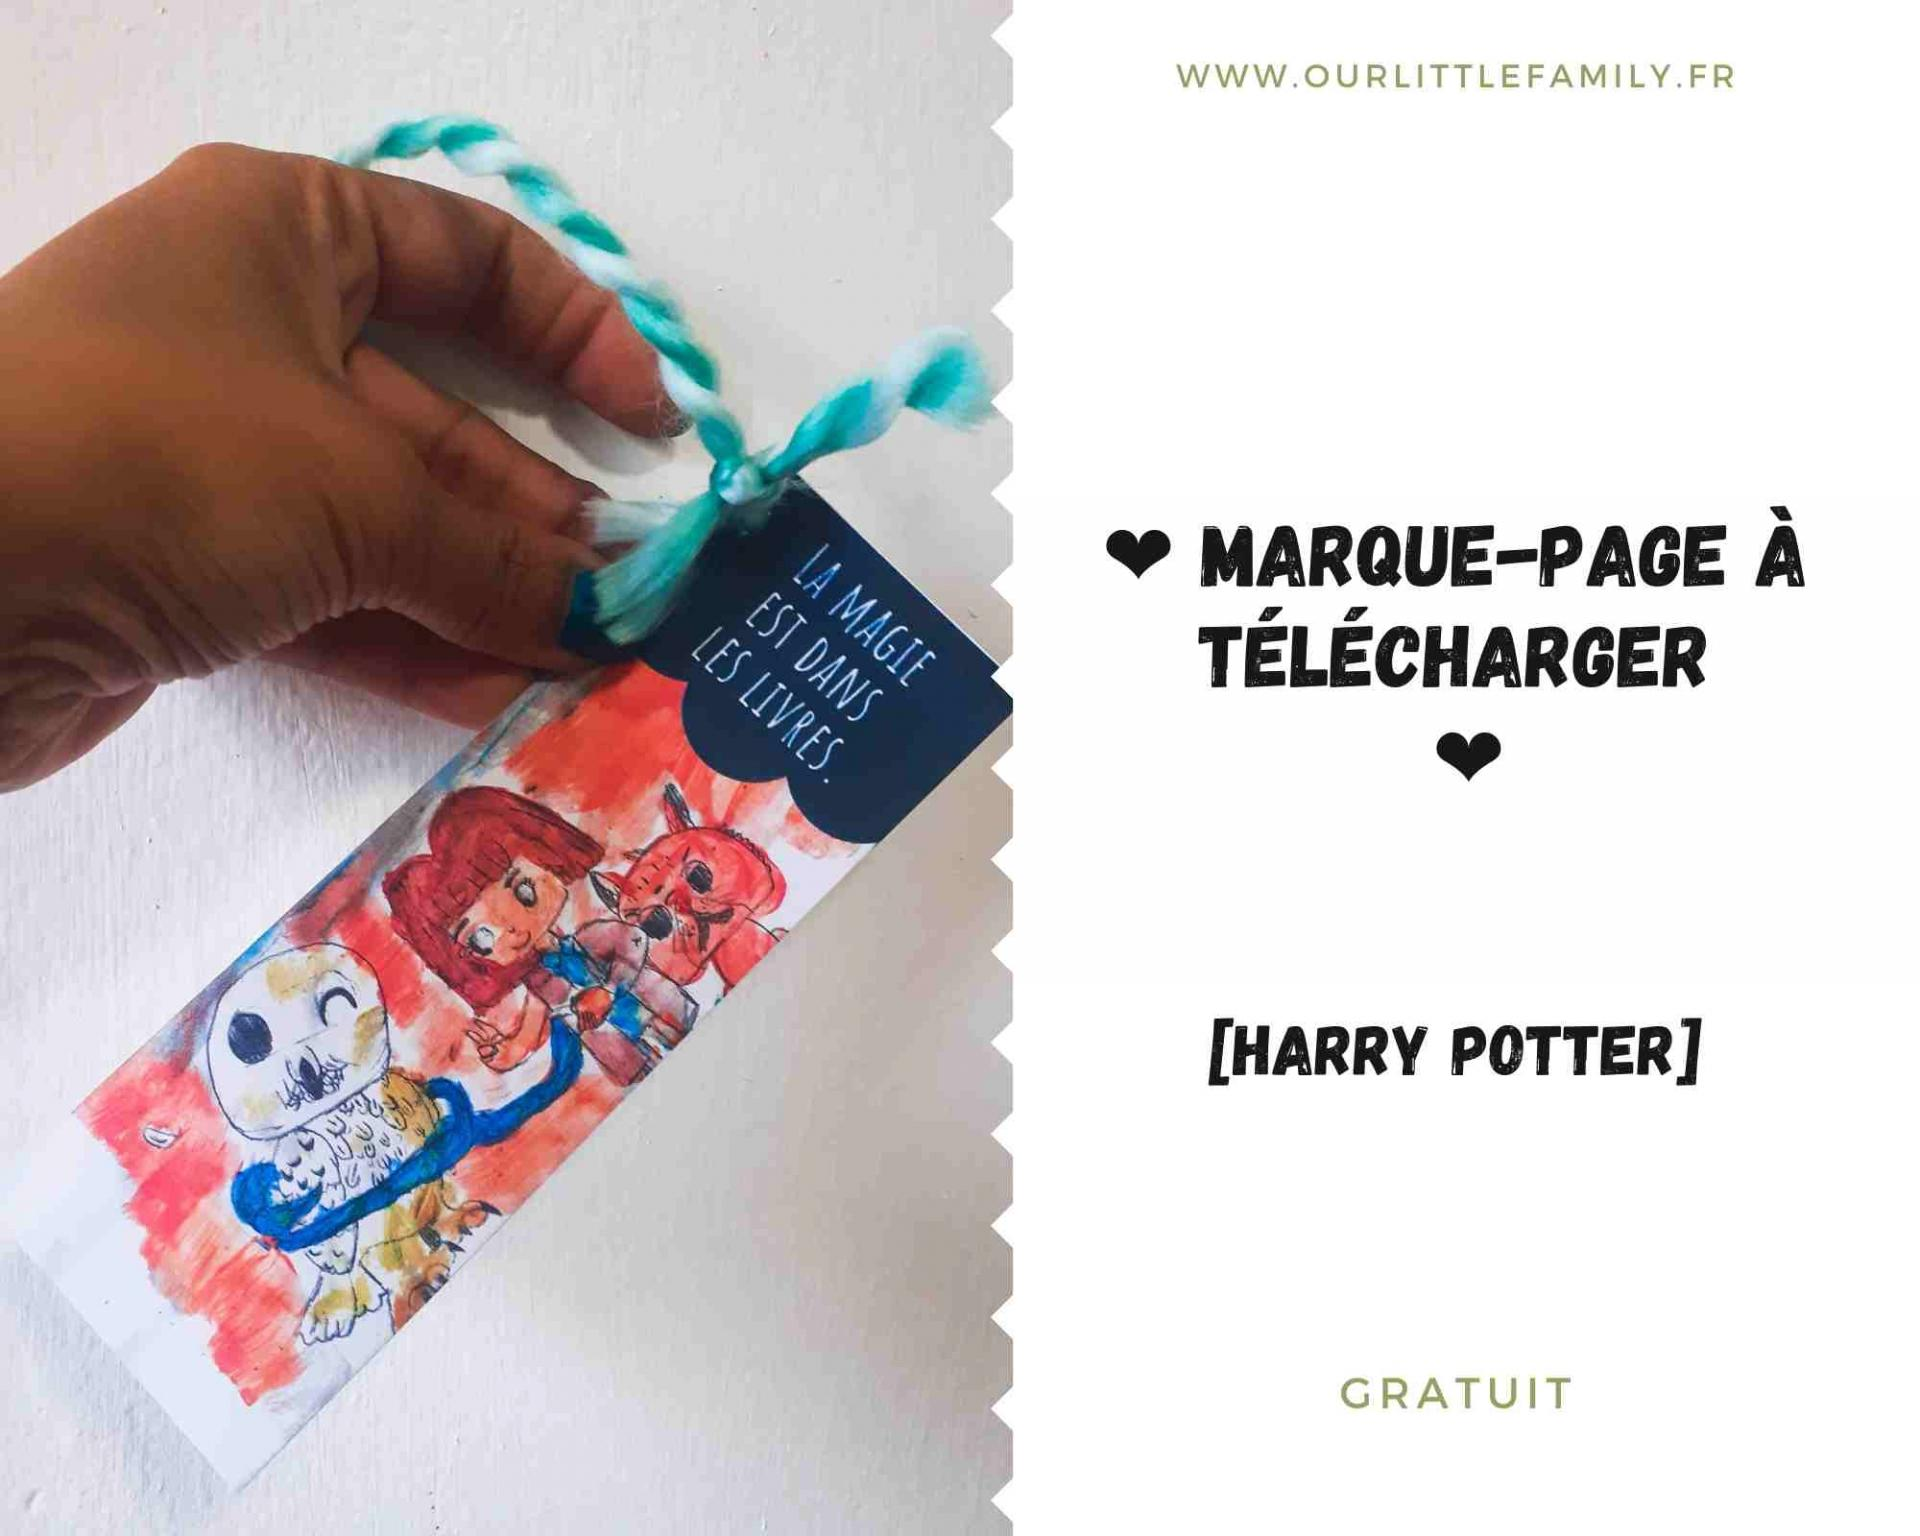 Marque page a telecharger